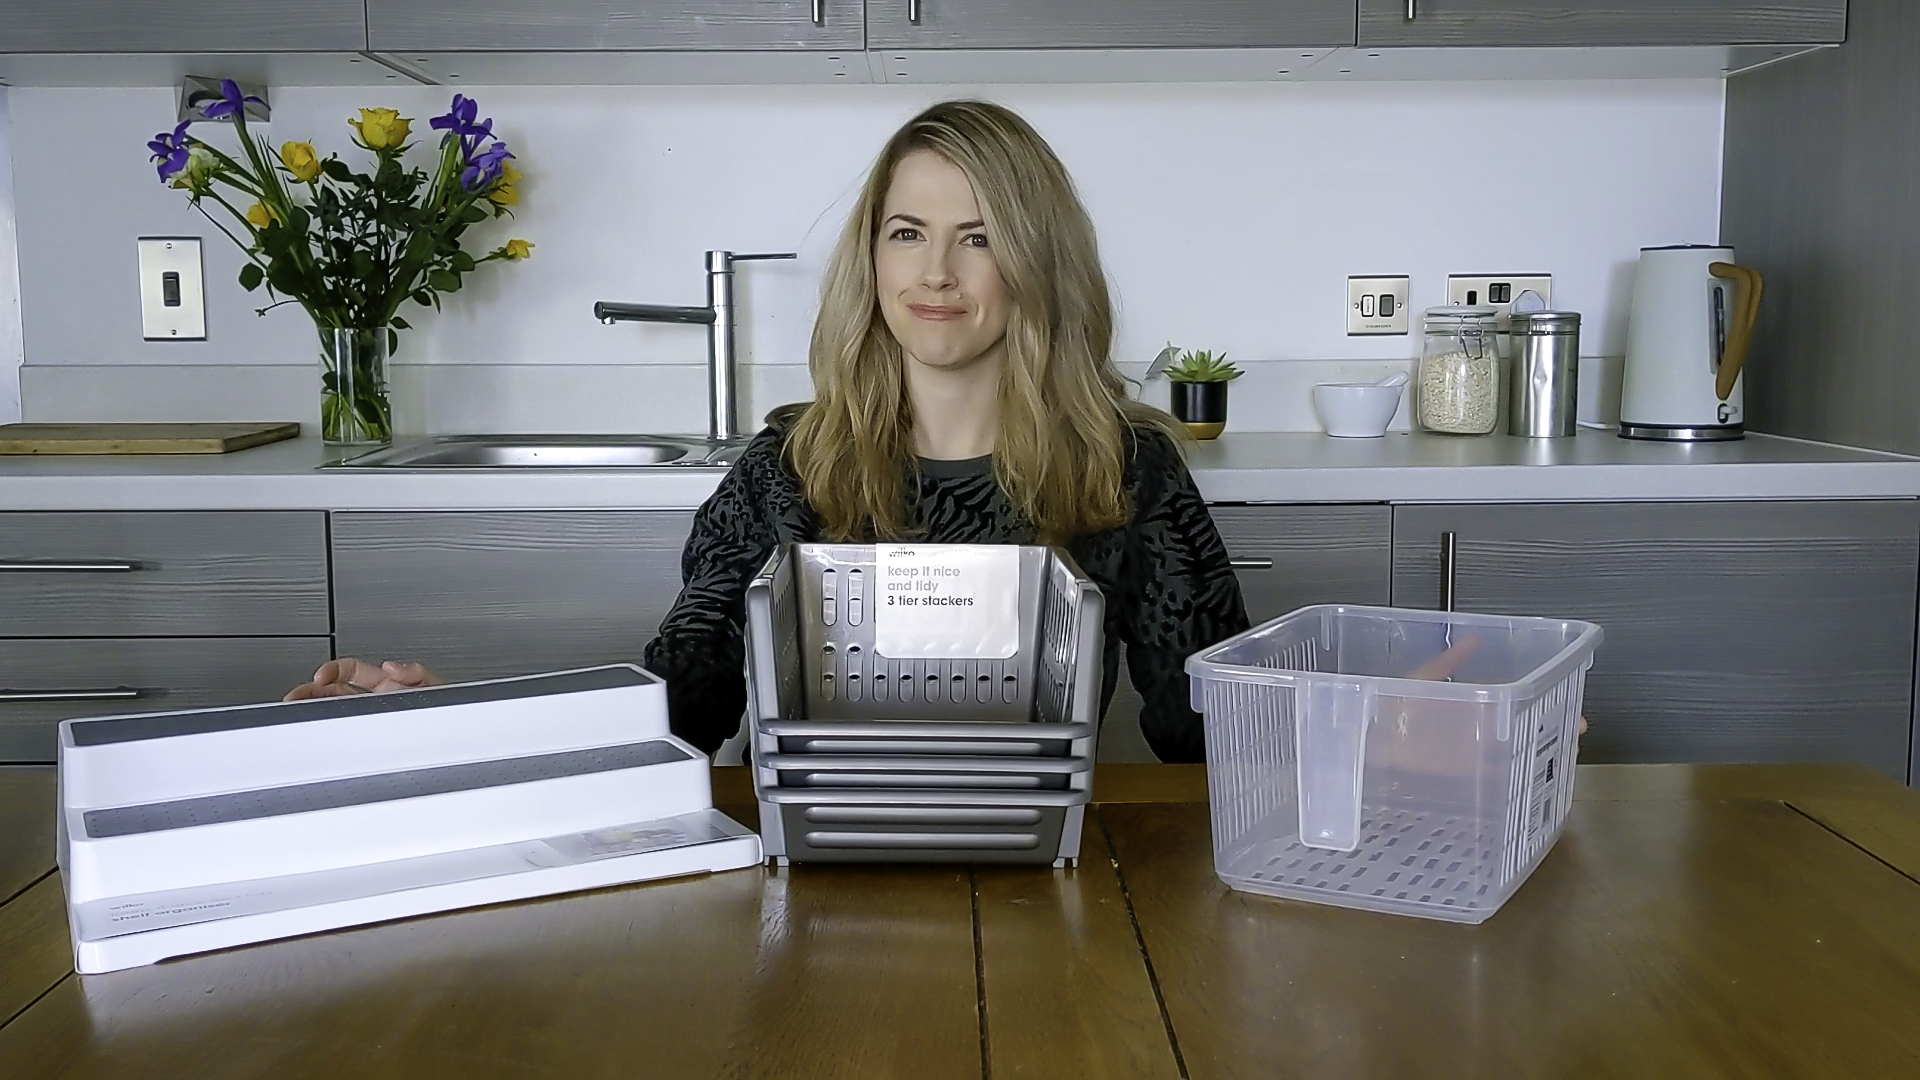 wilko's storage solutions are great for any budget